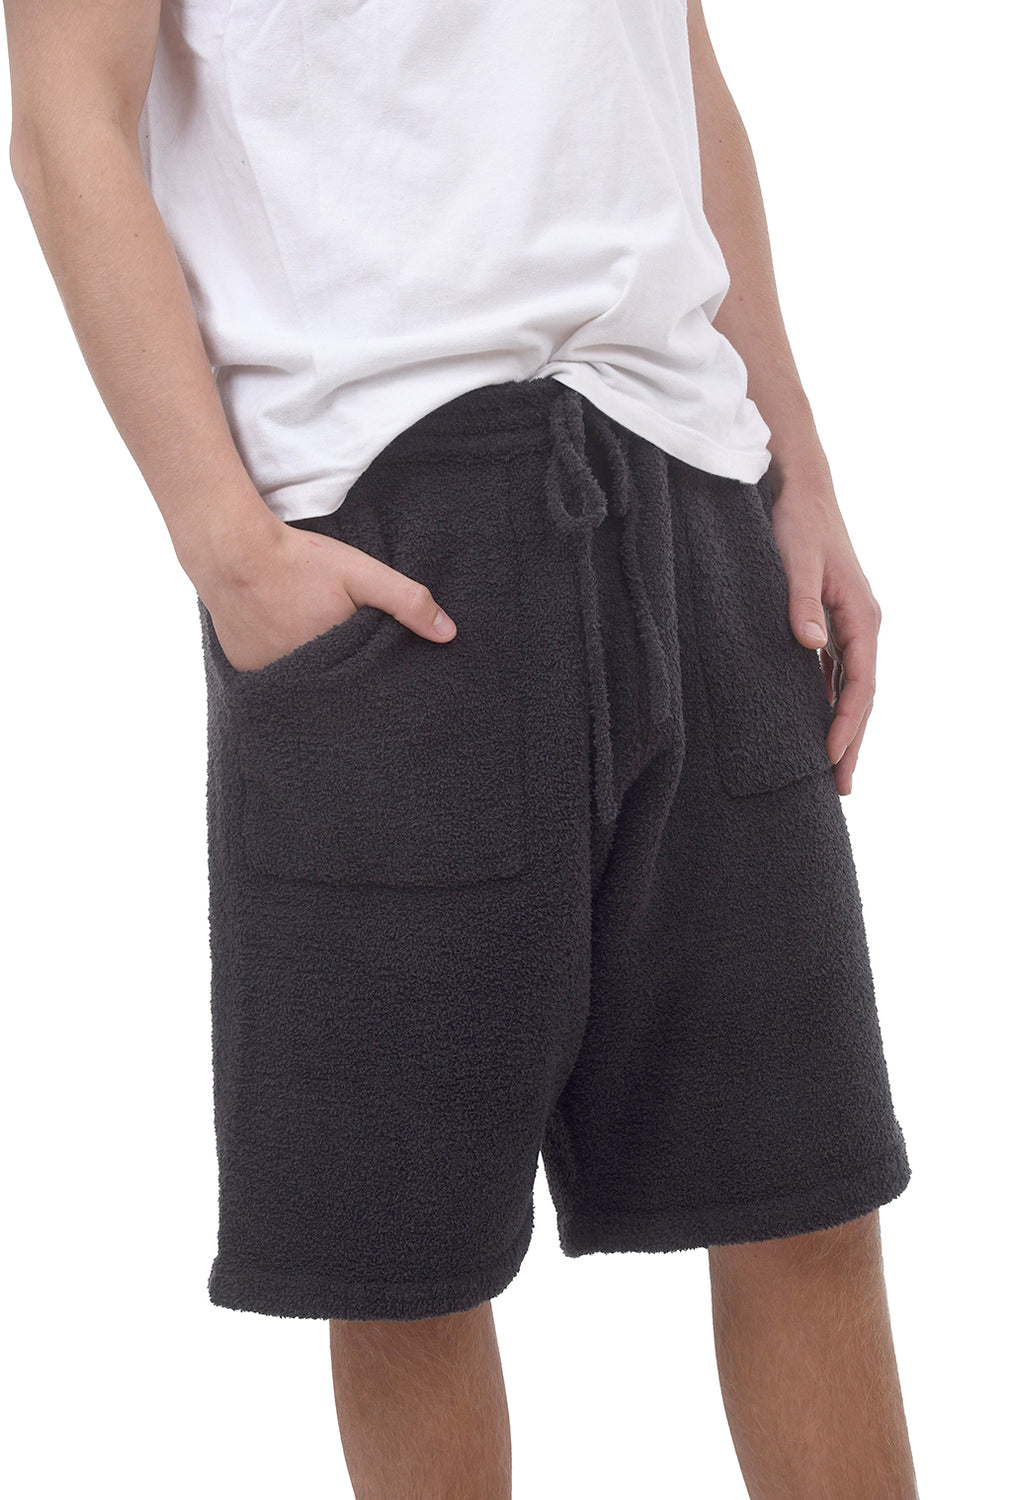 Cozychic Men's Lounge Shorts, Carbon